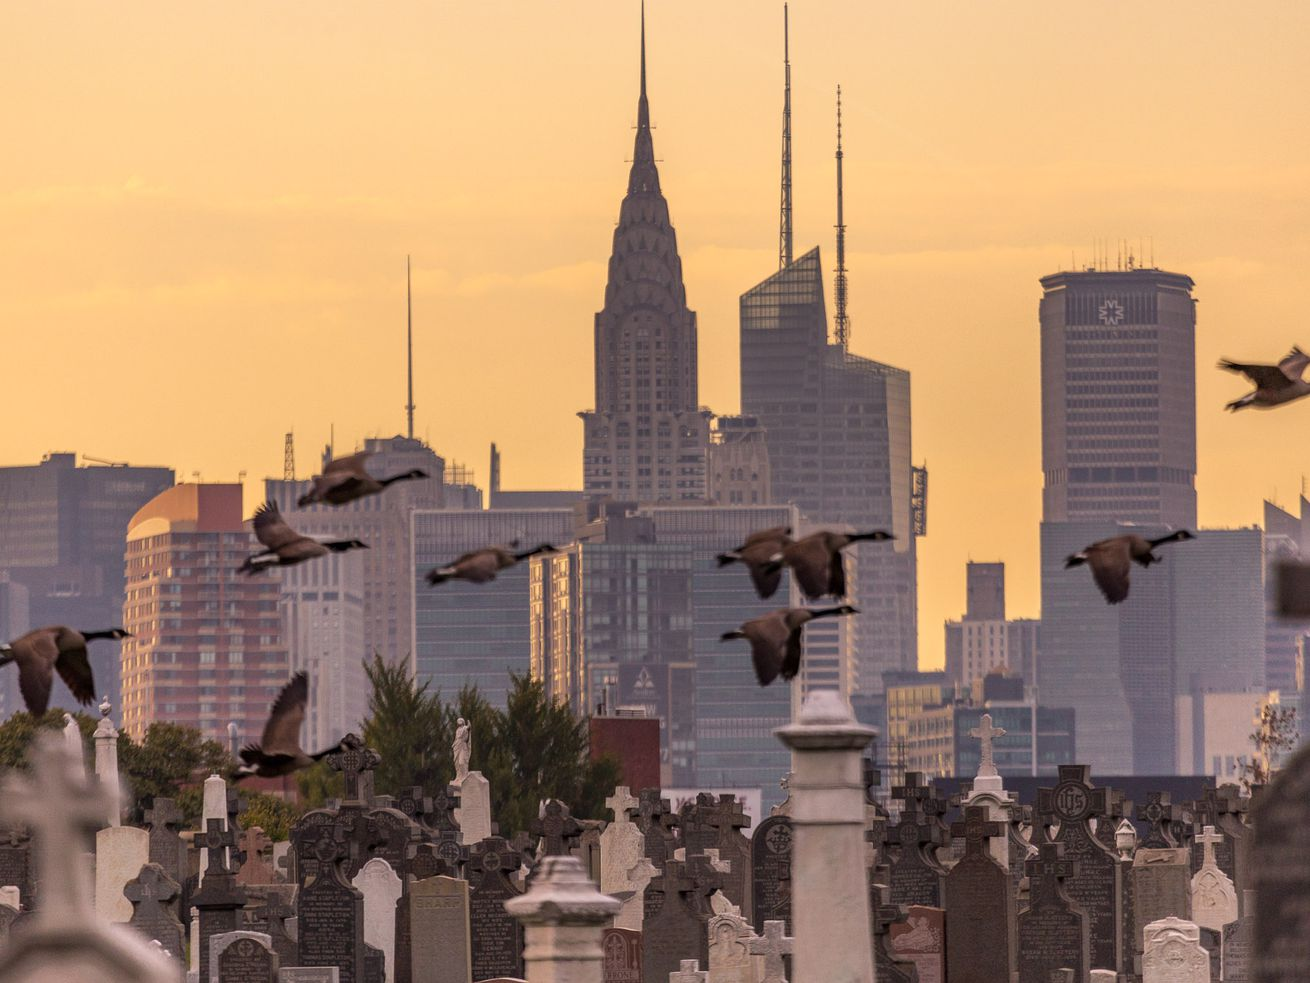 Calvary Cemetery at dusk with the Manhattan skyline in the background. Pigeons fly through the photograph.